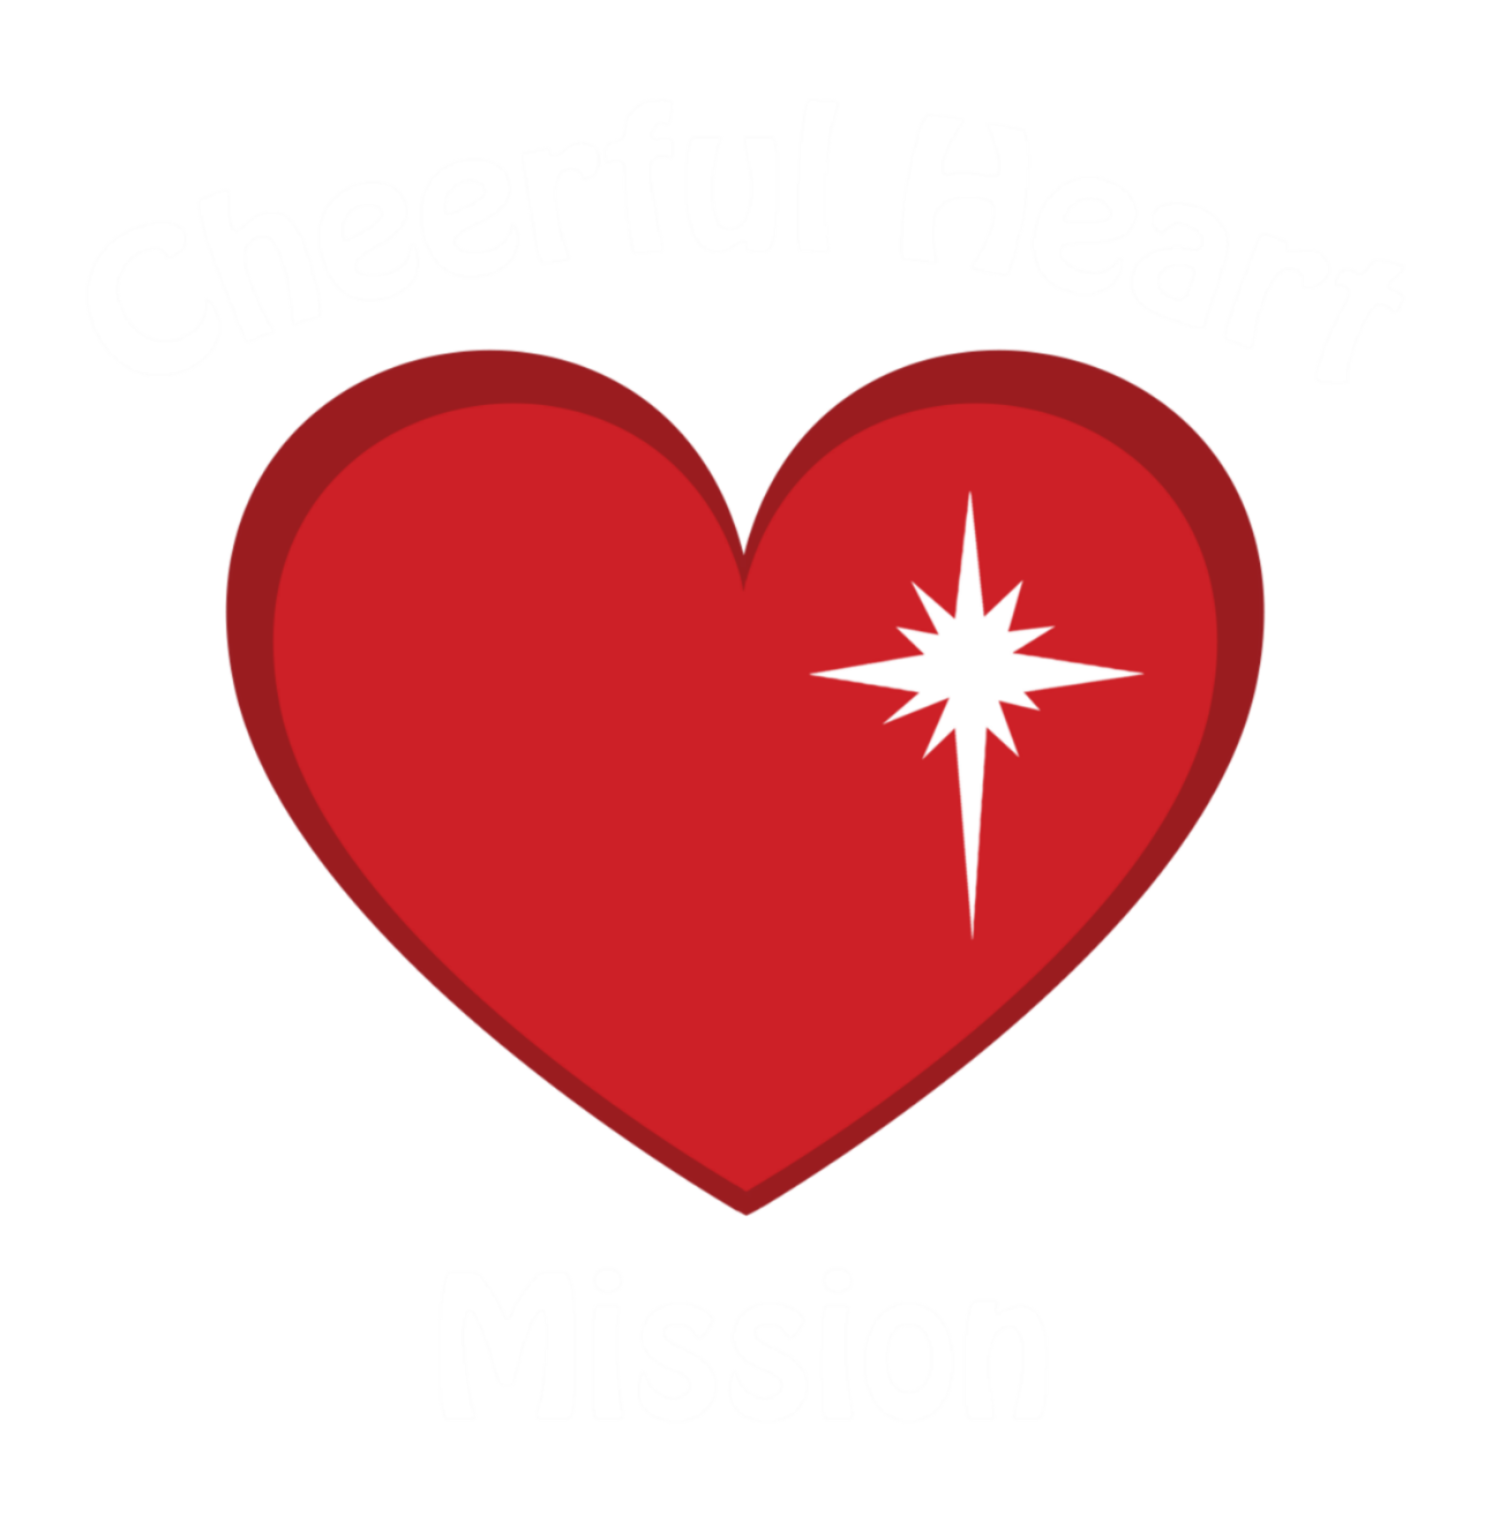 Cheerful Heart Mission